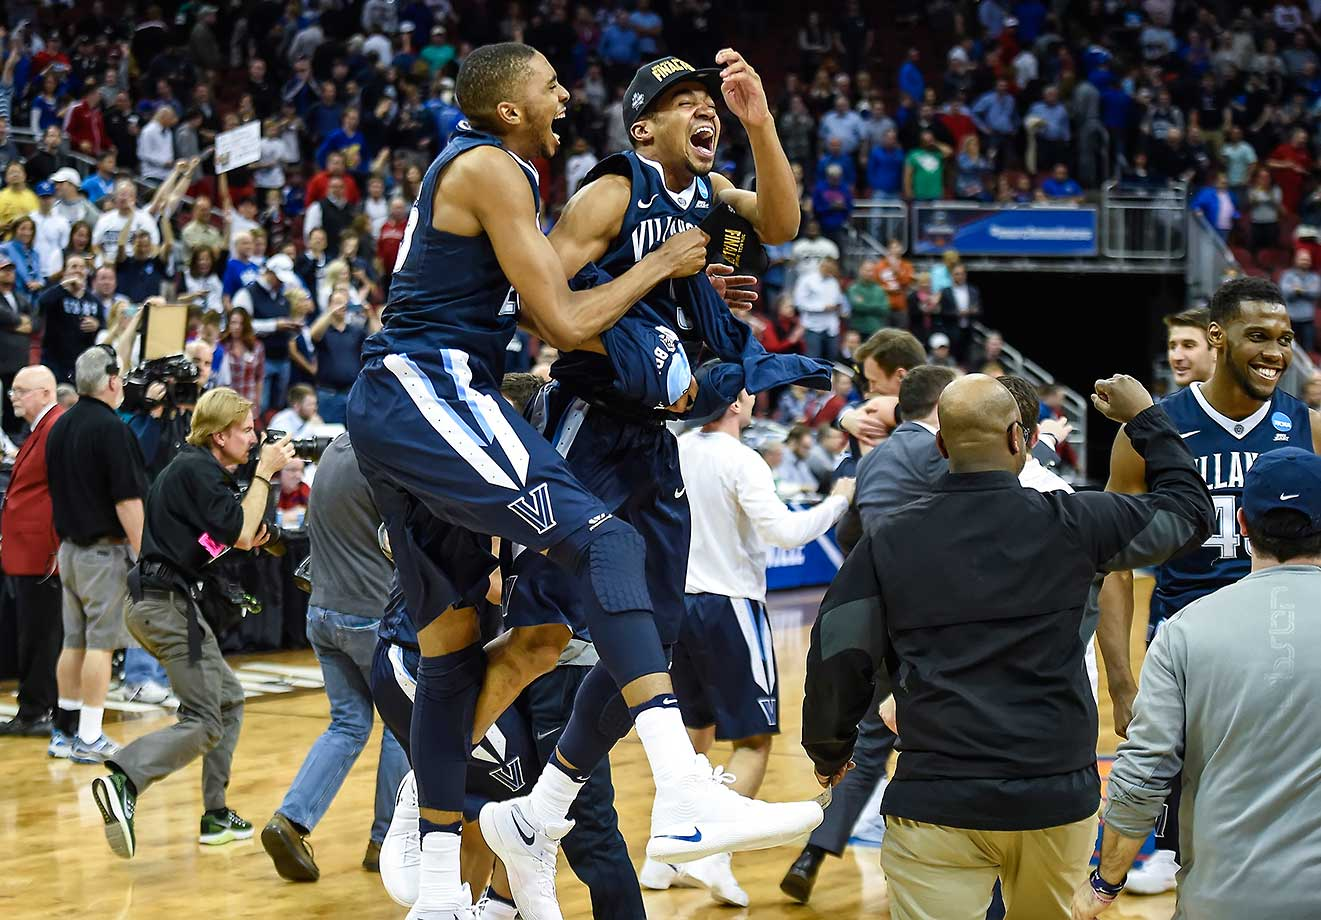 Villanova knocked off the tournament's top-seeded team, sending Kansas home with a 64-59 upset in Louisville.